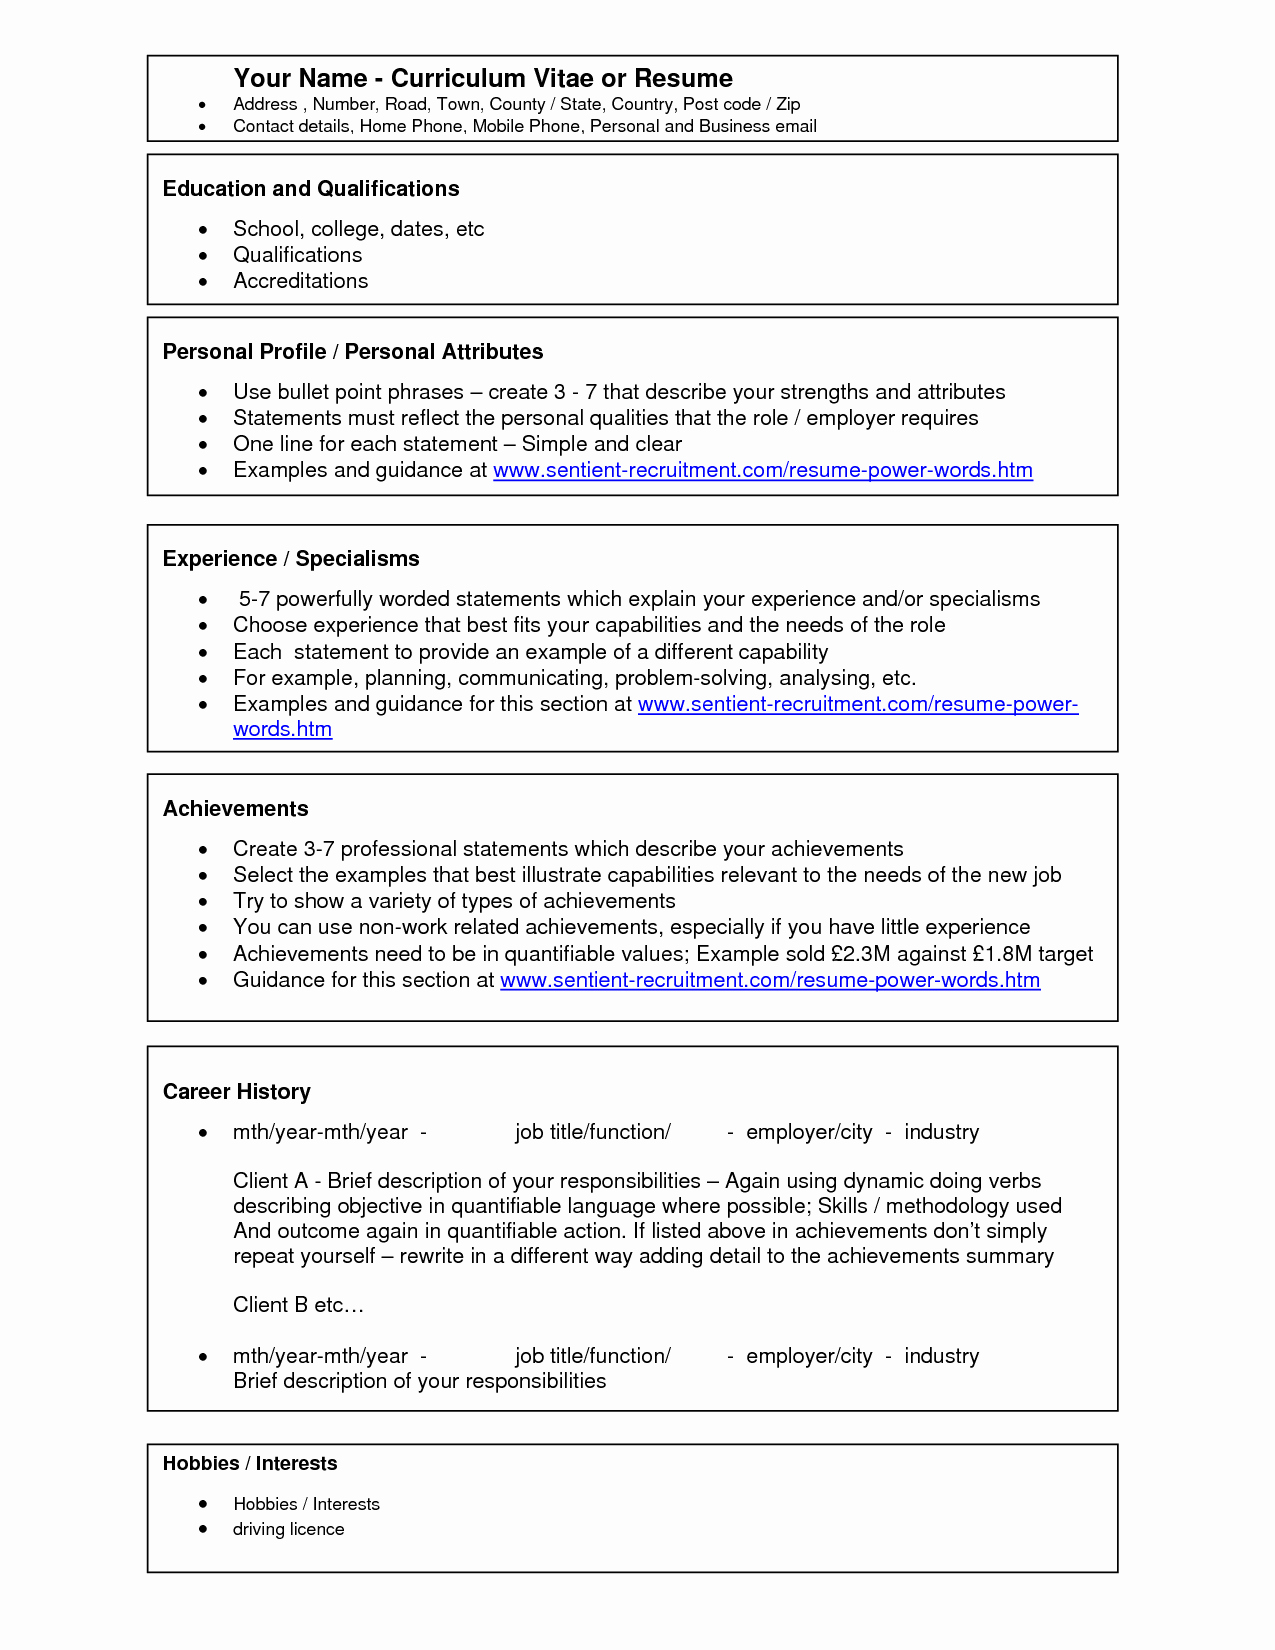 How to Use Resume Template In Word 2010 Free Printable